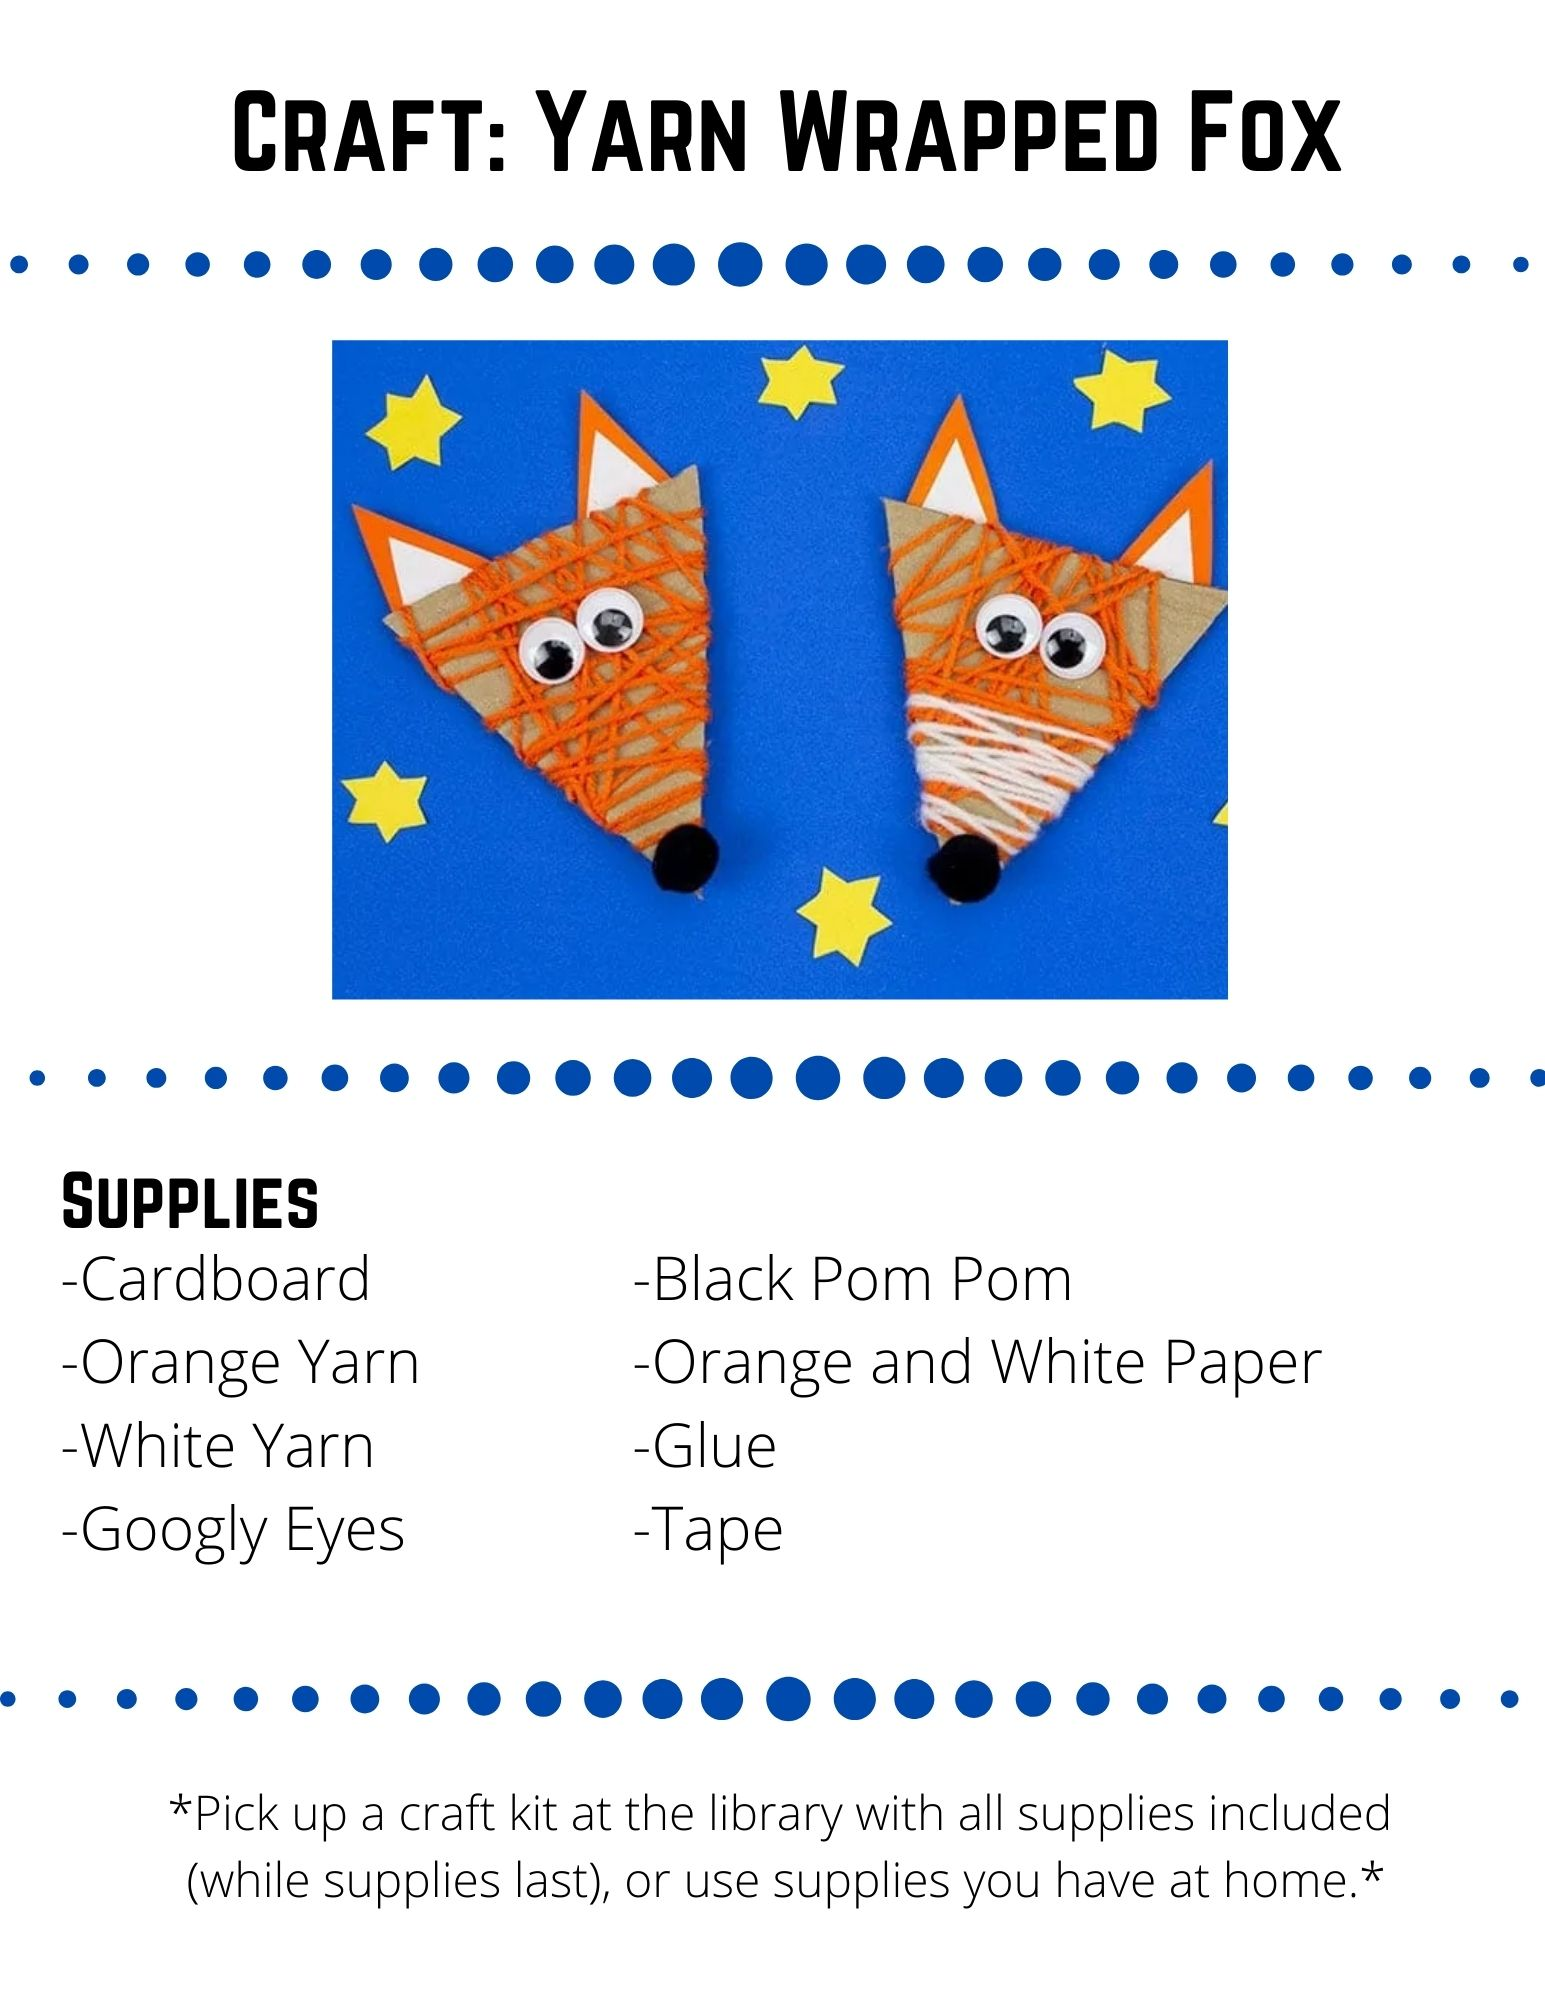 Craft: Yarn Wrapped Fox: Supplies: Cardboard -Orange Yarn -White Yarn -Googly Eyes -Black Pom Pom -Orange and White Paper -Glue -Tape. Cut a triangle head from your cardboard box.  Cut it any size you like!Tape one end of  the orange yarn on to the back of the cardboard triangle.Wrap and wrap the yarn all around the cardboard triangle. When you have finished wrapping your yarn, tape the end onto the back of the cardboard. Optional: Repeat the process with white yarn to give the fox a white nose. Cut two triangle ears from your orange paper and two smaller white inner ear triangles.  Tape or glue the ears onto the back of the foxes head.Glue on googly eyes and a pom pom nose.  Optional: Add some pipe cleaner or paper whiskers.